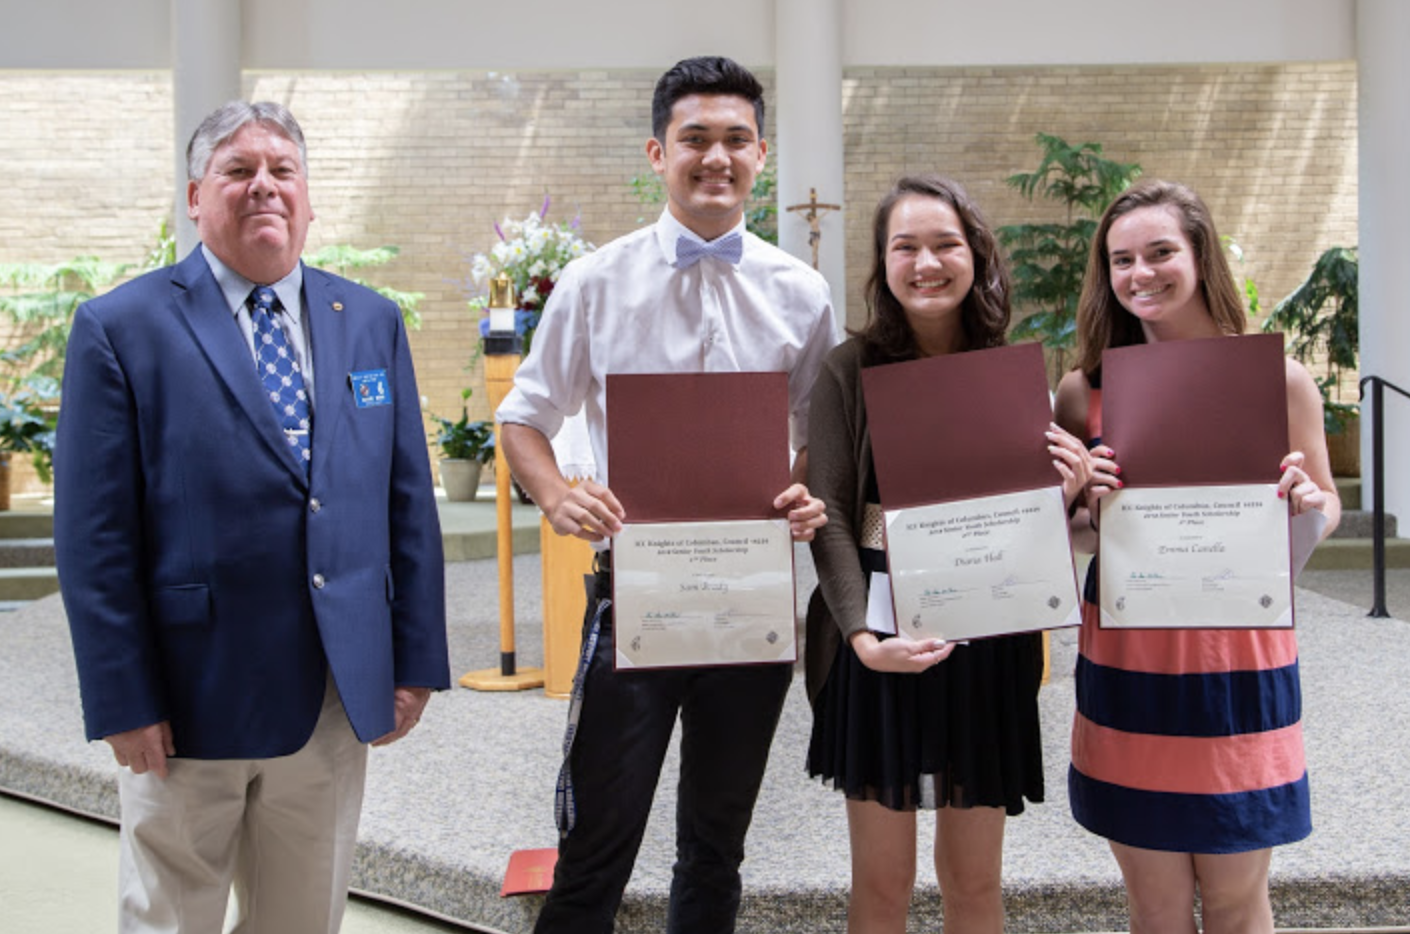 Knights of Columbus Youth Scholarship Awards - June 11, 2018